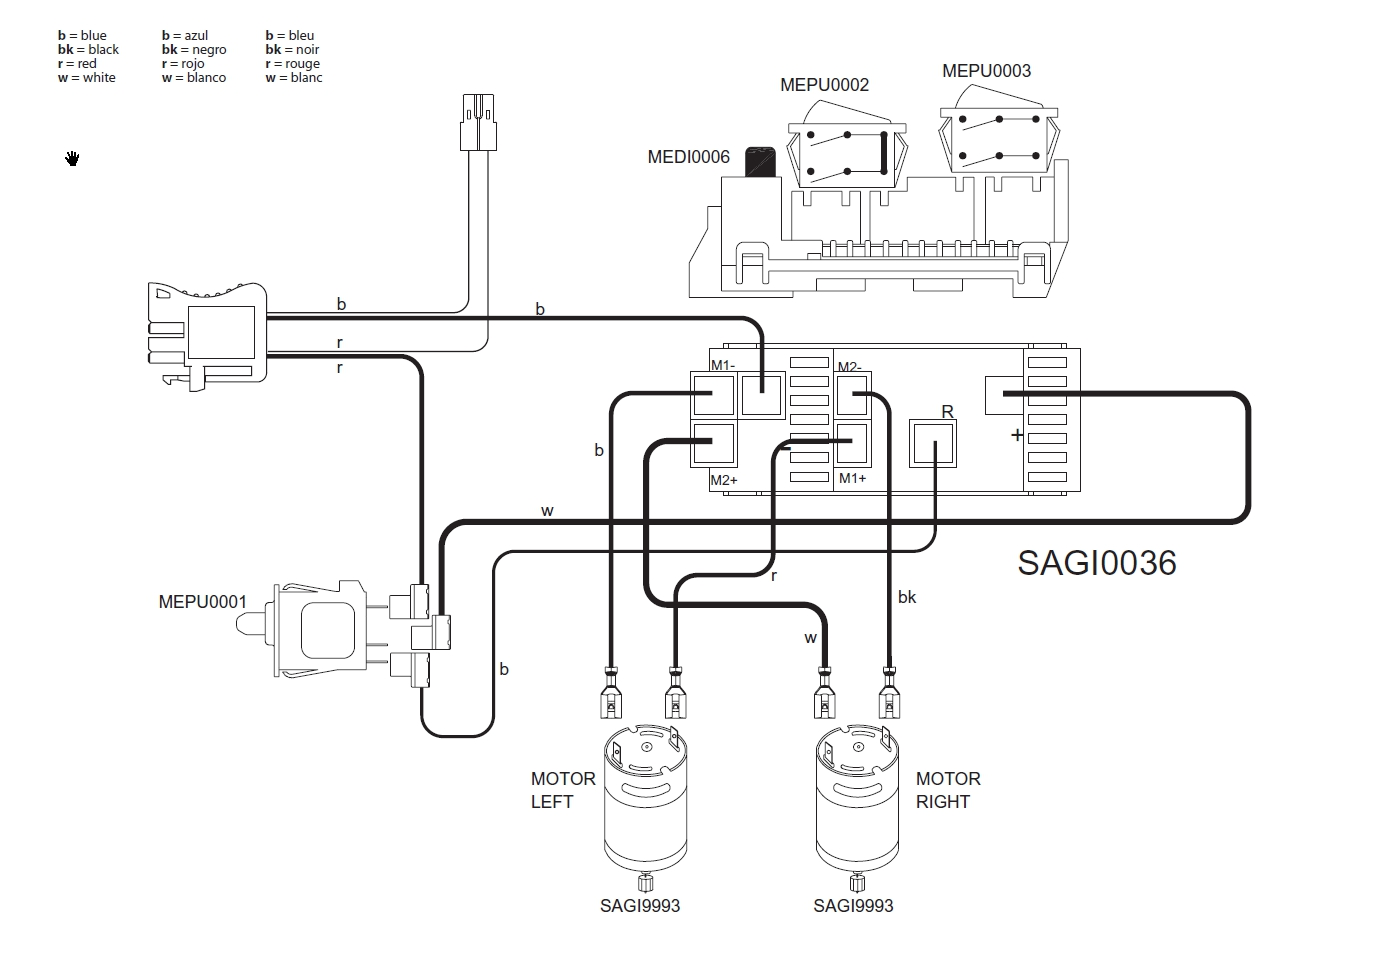 Gator 850d Wiring Diagram - Wiring Diagrams on